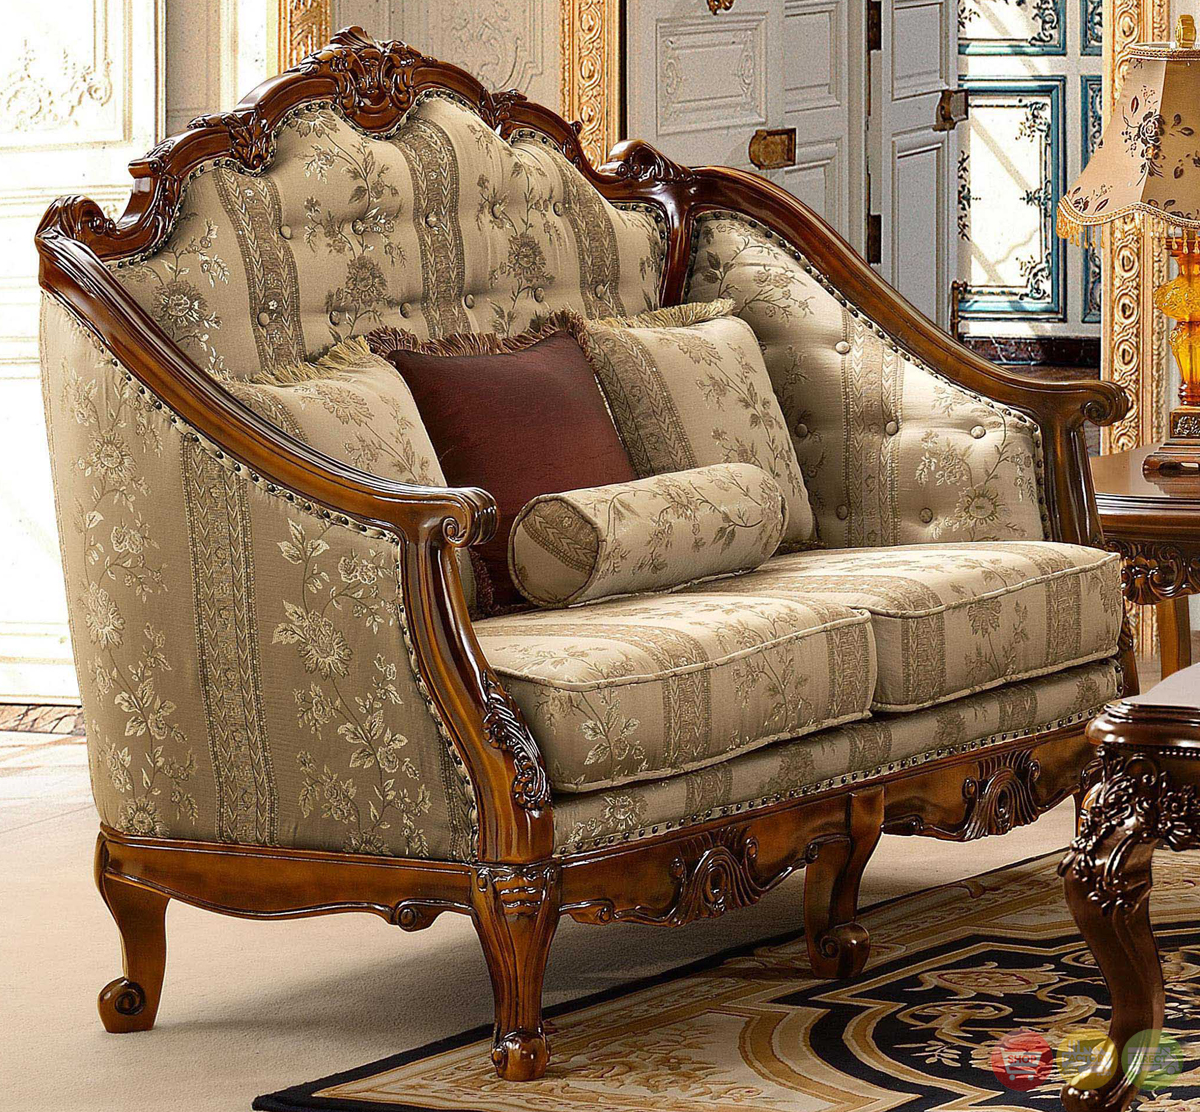 Stylish Recliner Antique Style Luxury Formal Living Room Furniture Set Hd 953